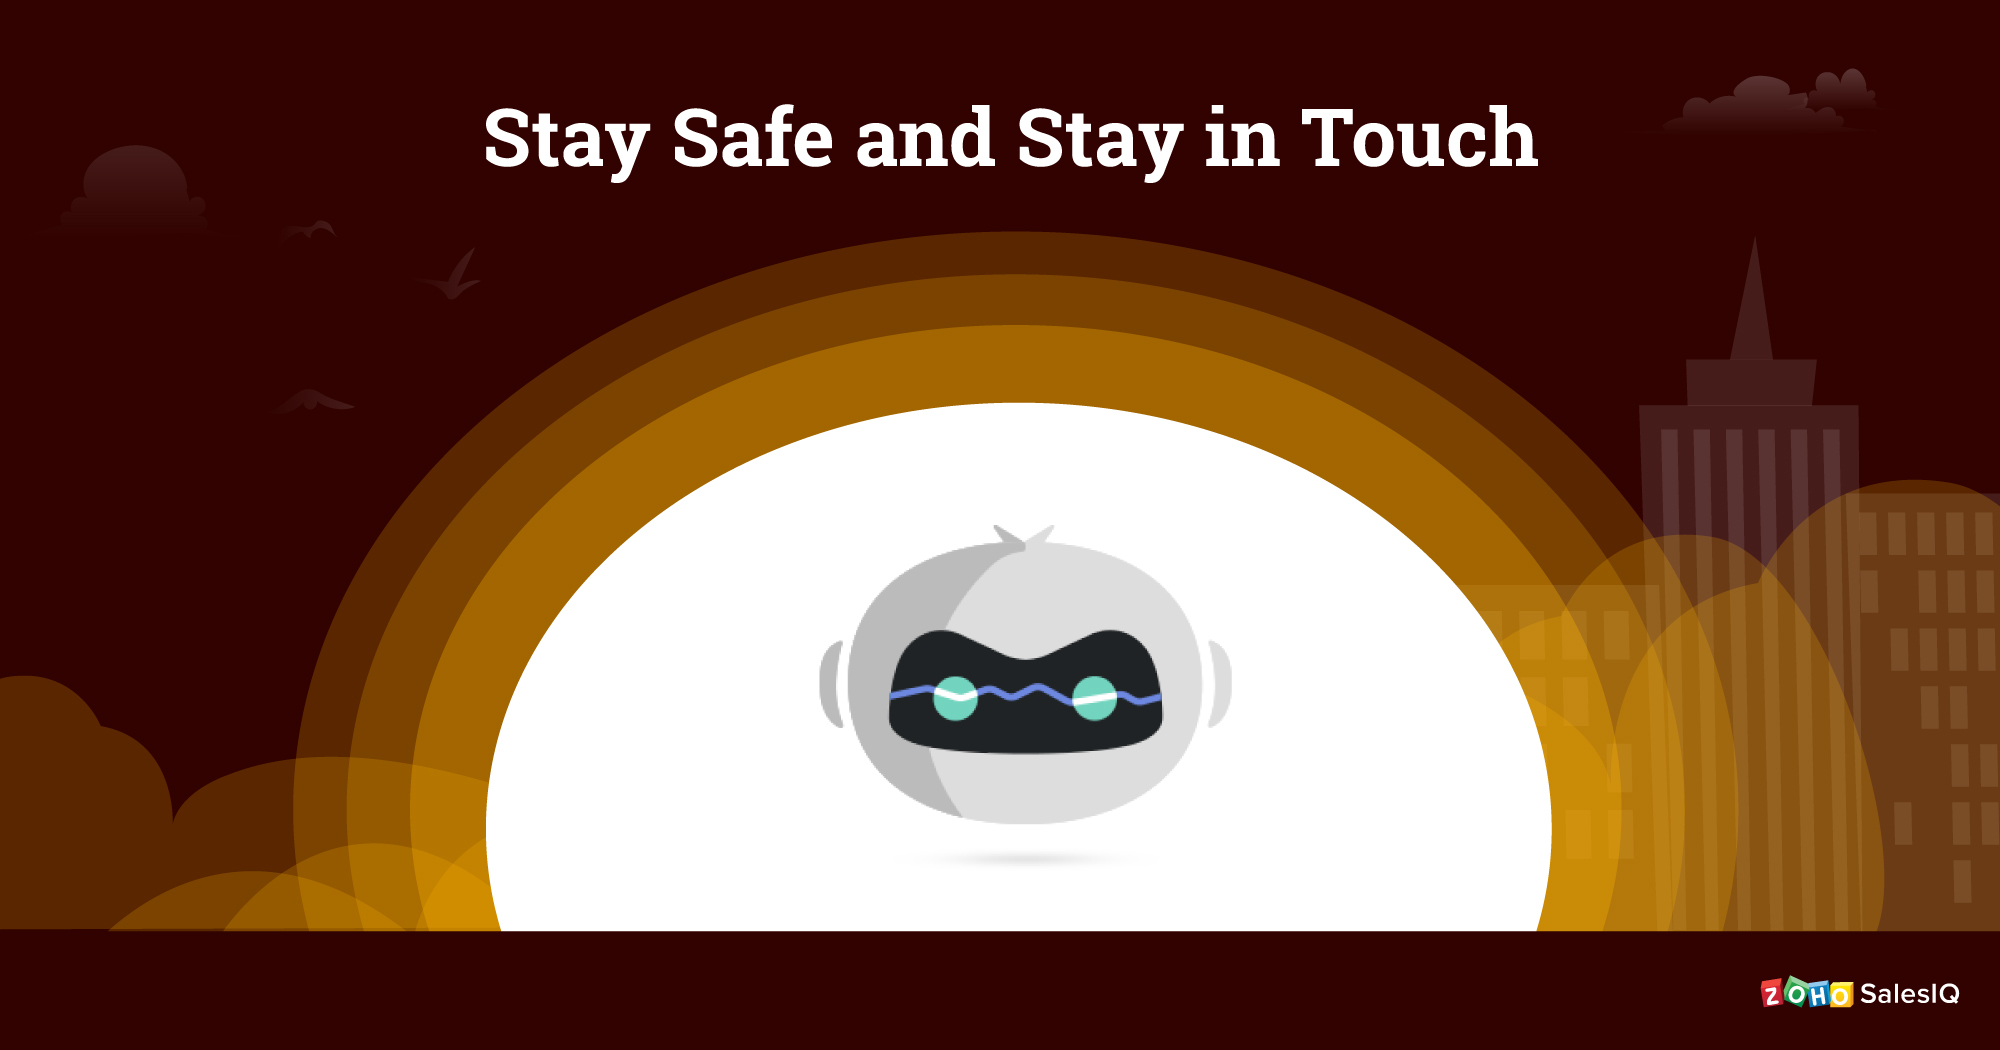 Stay safe and in touch